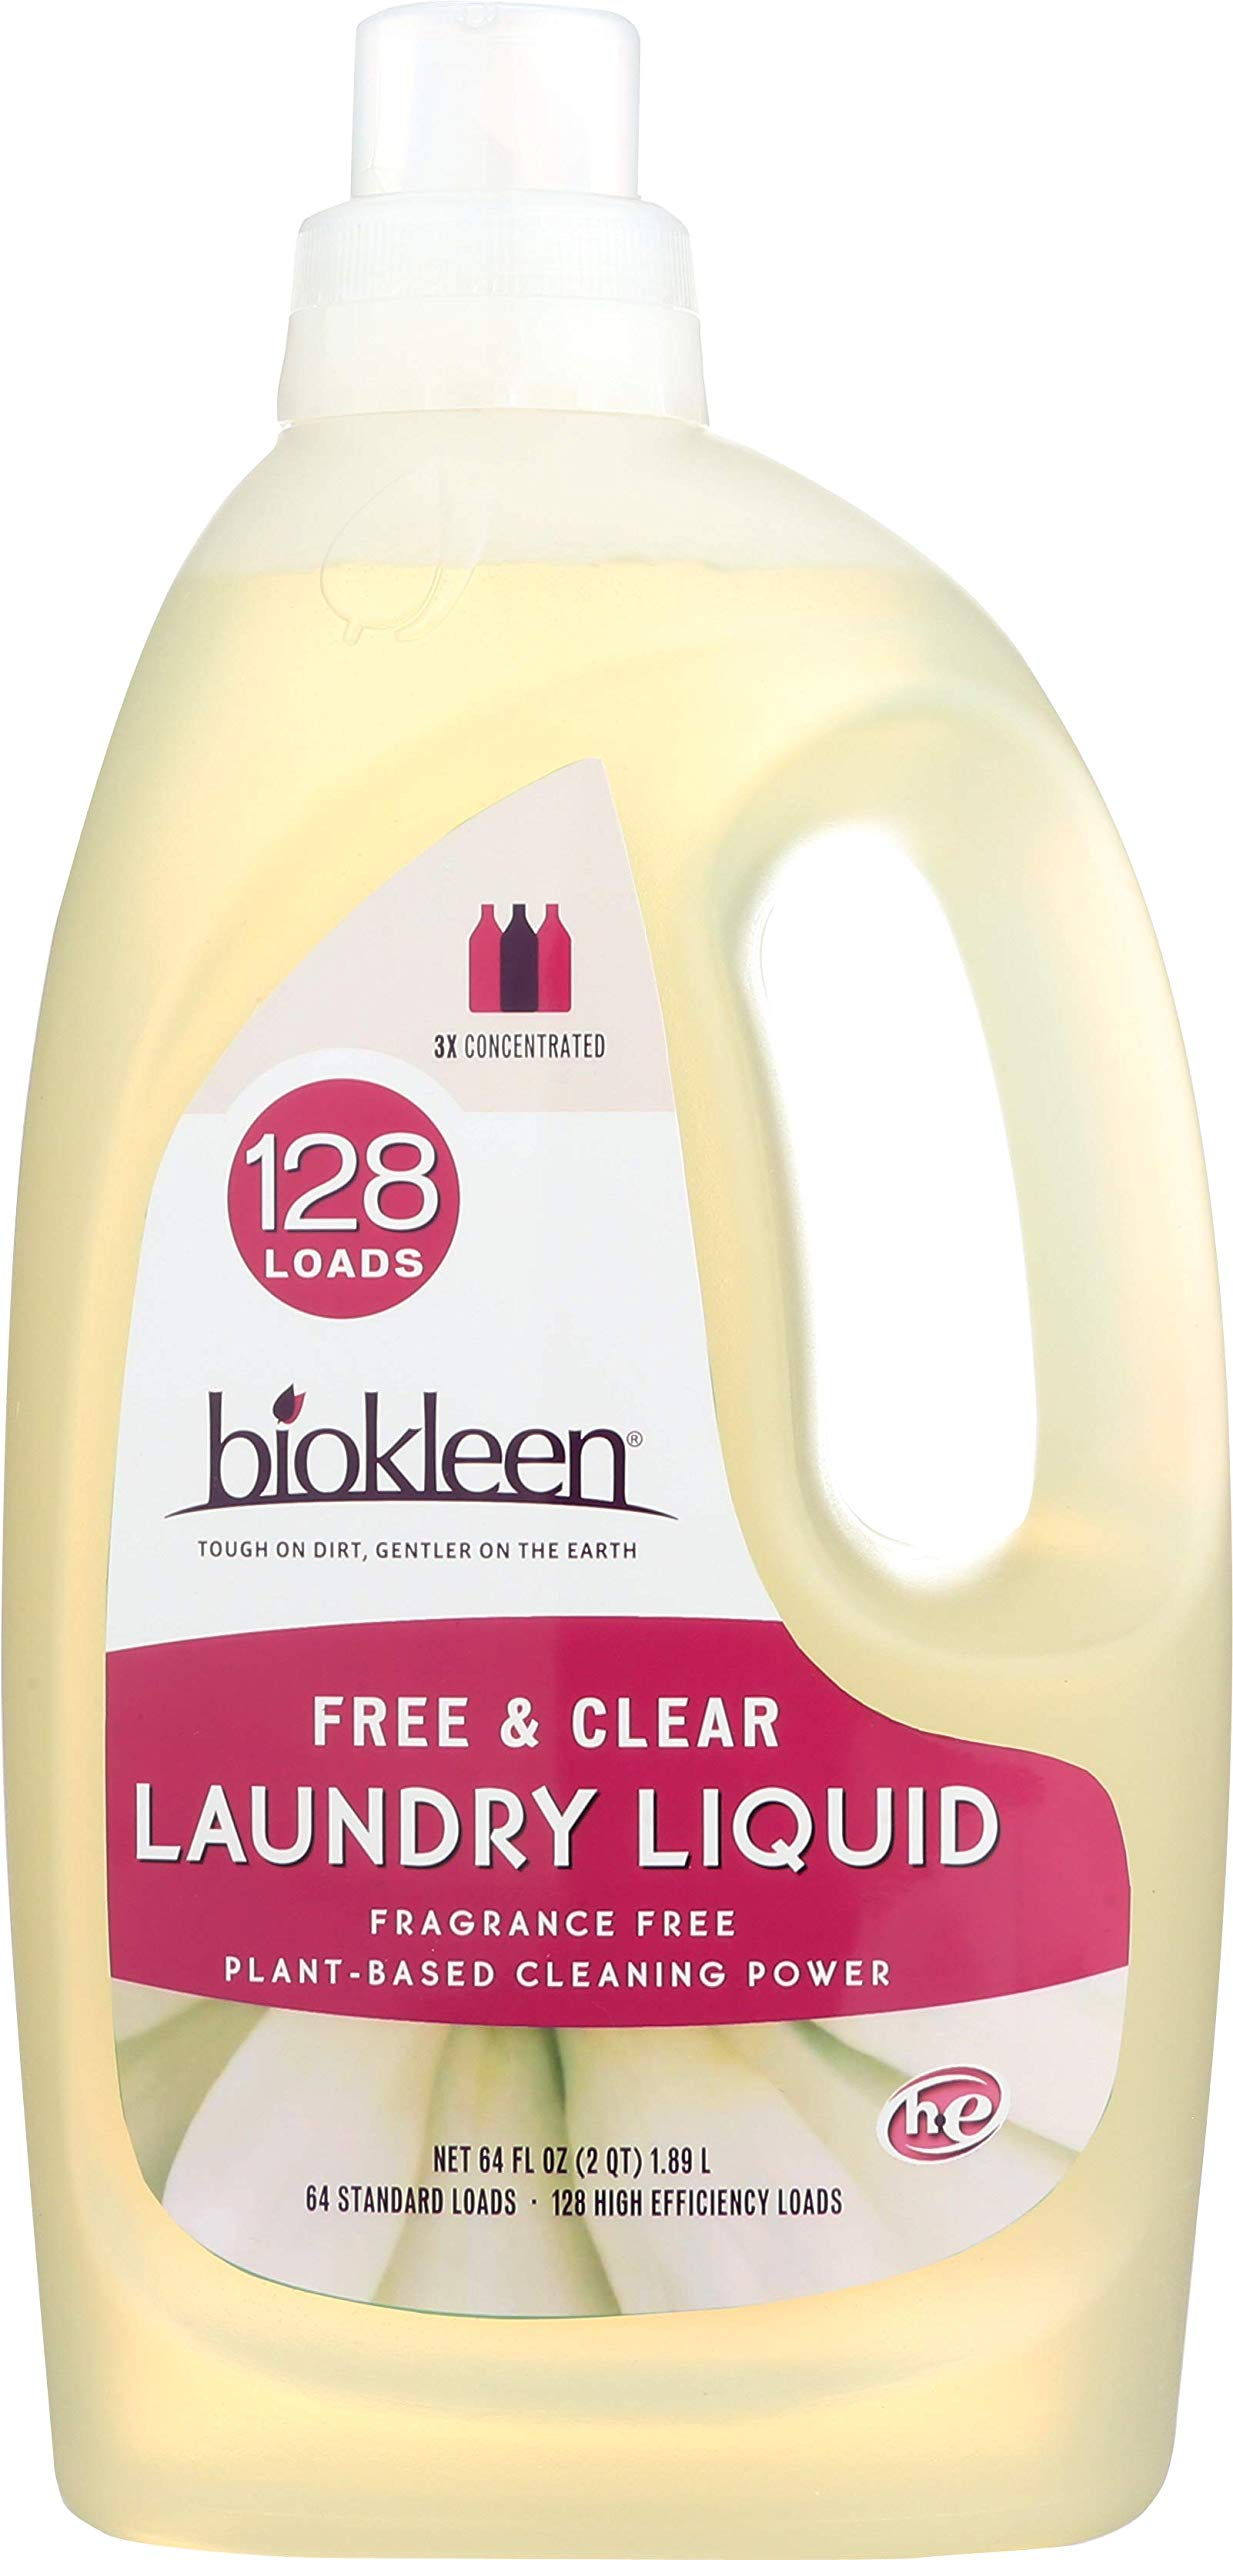 Biokleen Laundry Detergent Liquid, Concentrated, Eco-Friendly, Non-Toxic, Plant-Based, No Artificial Fragrance, Free & Clear, Unscented, 64 Ounces - 128 HE Loads/64 Standard Loads (Pack of 6)